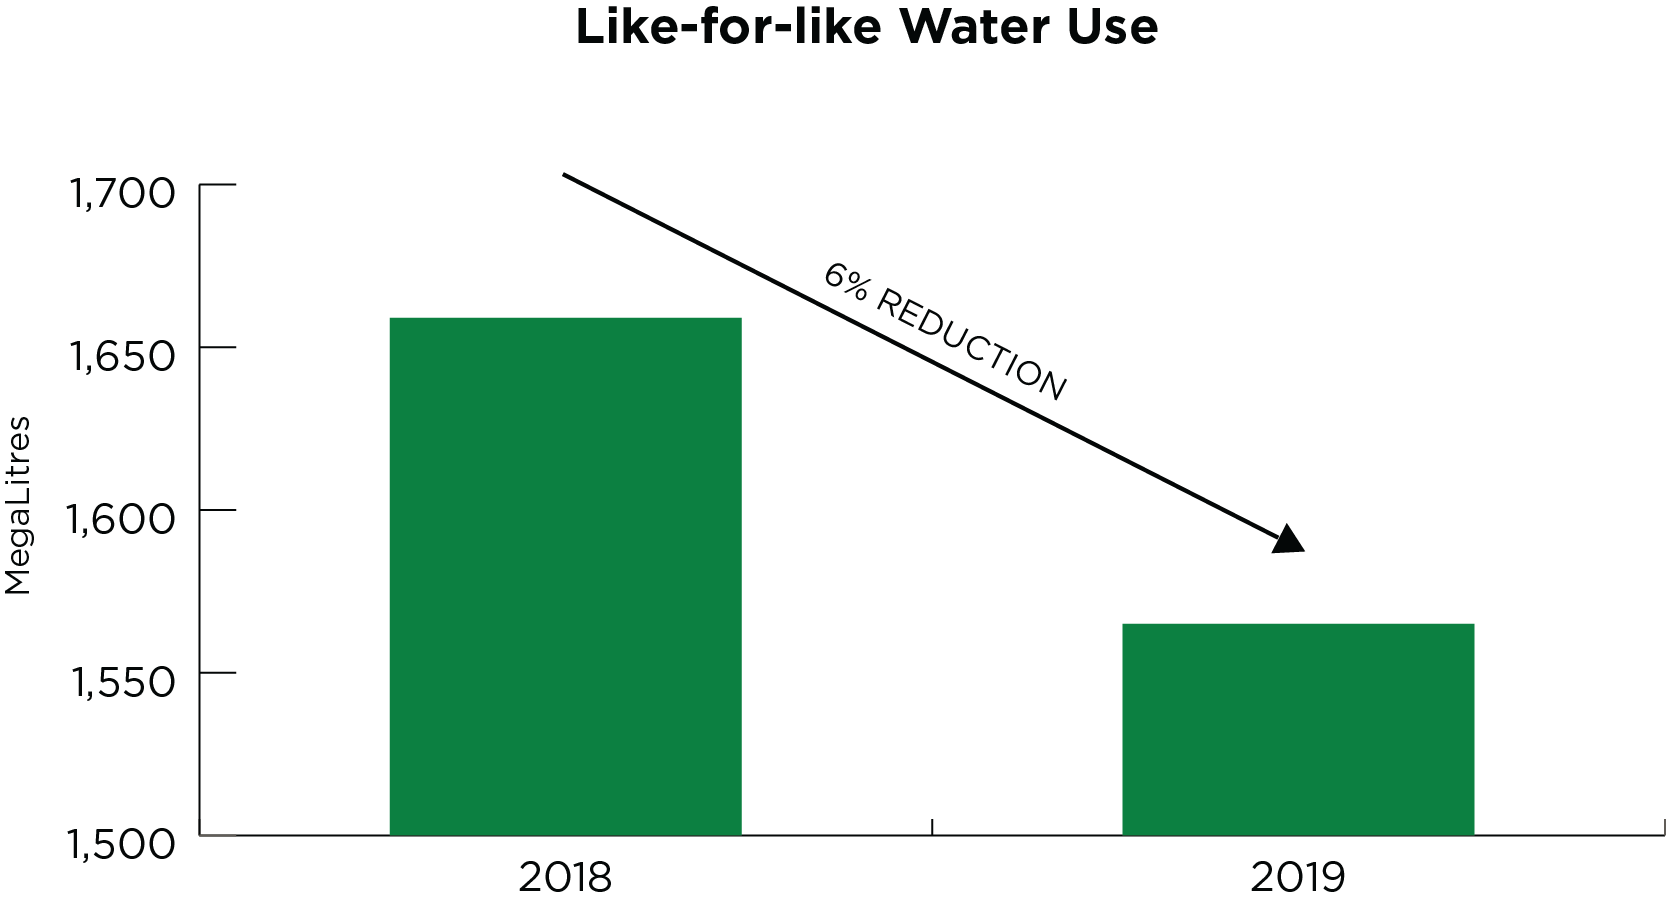 Chart showing Like-for-like Water Use, measured in MegaLitres. 2018 1,659. 2019 1,565.